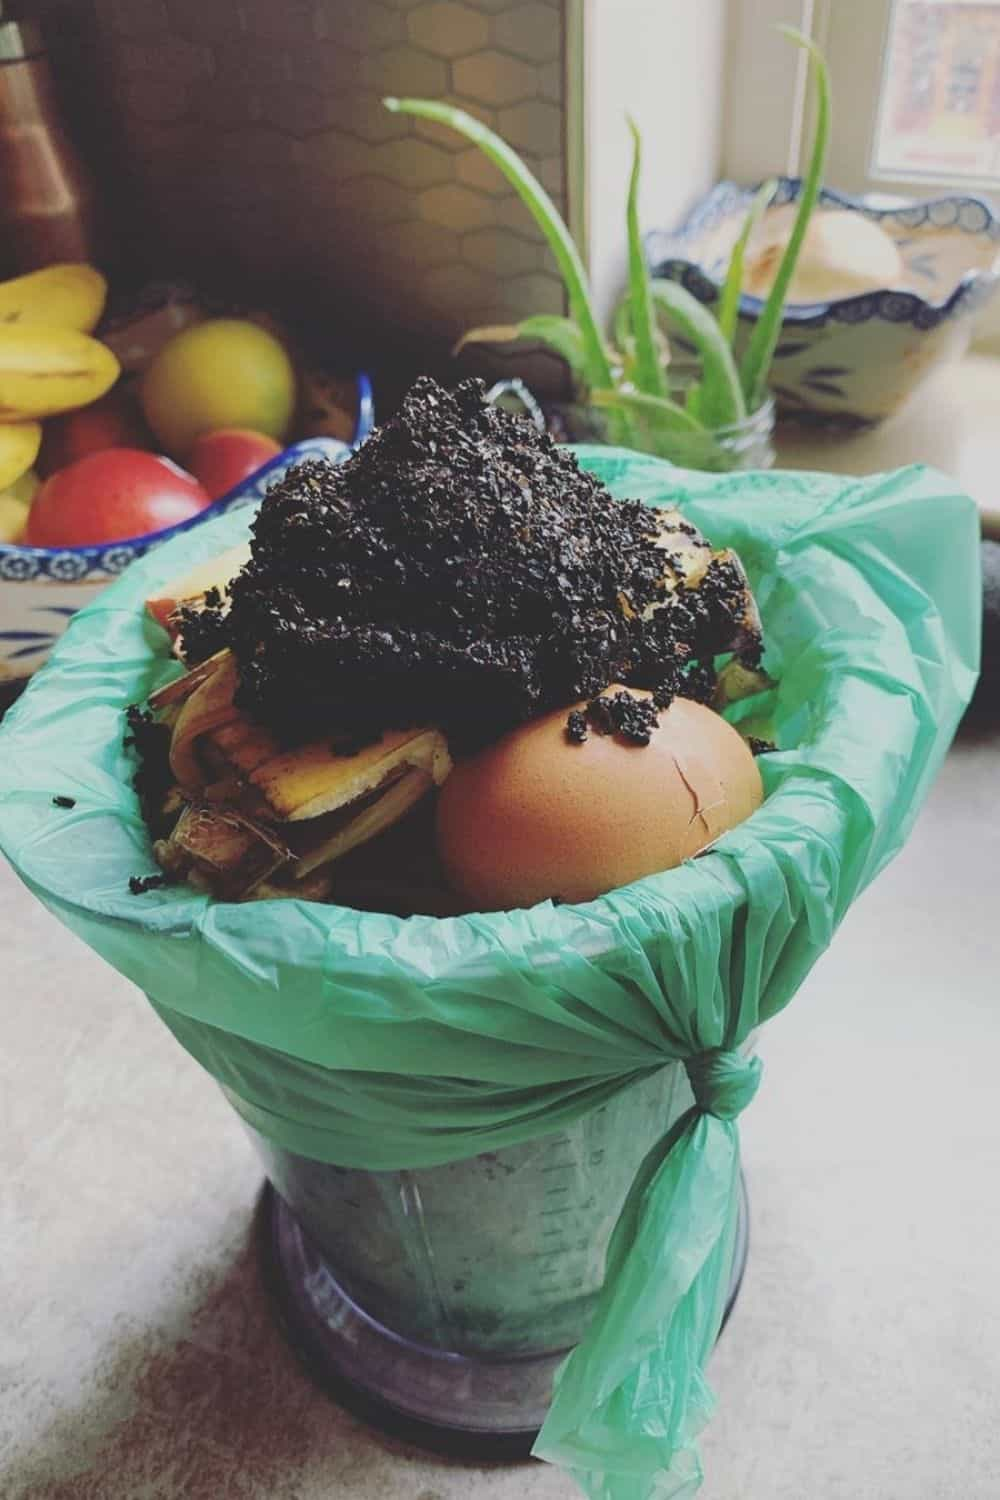 """Recently rubbish-disposal trends have seen an explosion of compostable and biodegradable trash bags. But, just as all """"trash"""" isn't equal, we shouldn't view all """"Earth-friendly"""" trash bags as equal either Image by Biobag #biodegradeabletrashbags #compostabletrashbags #sustainablejungle"""